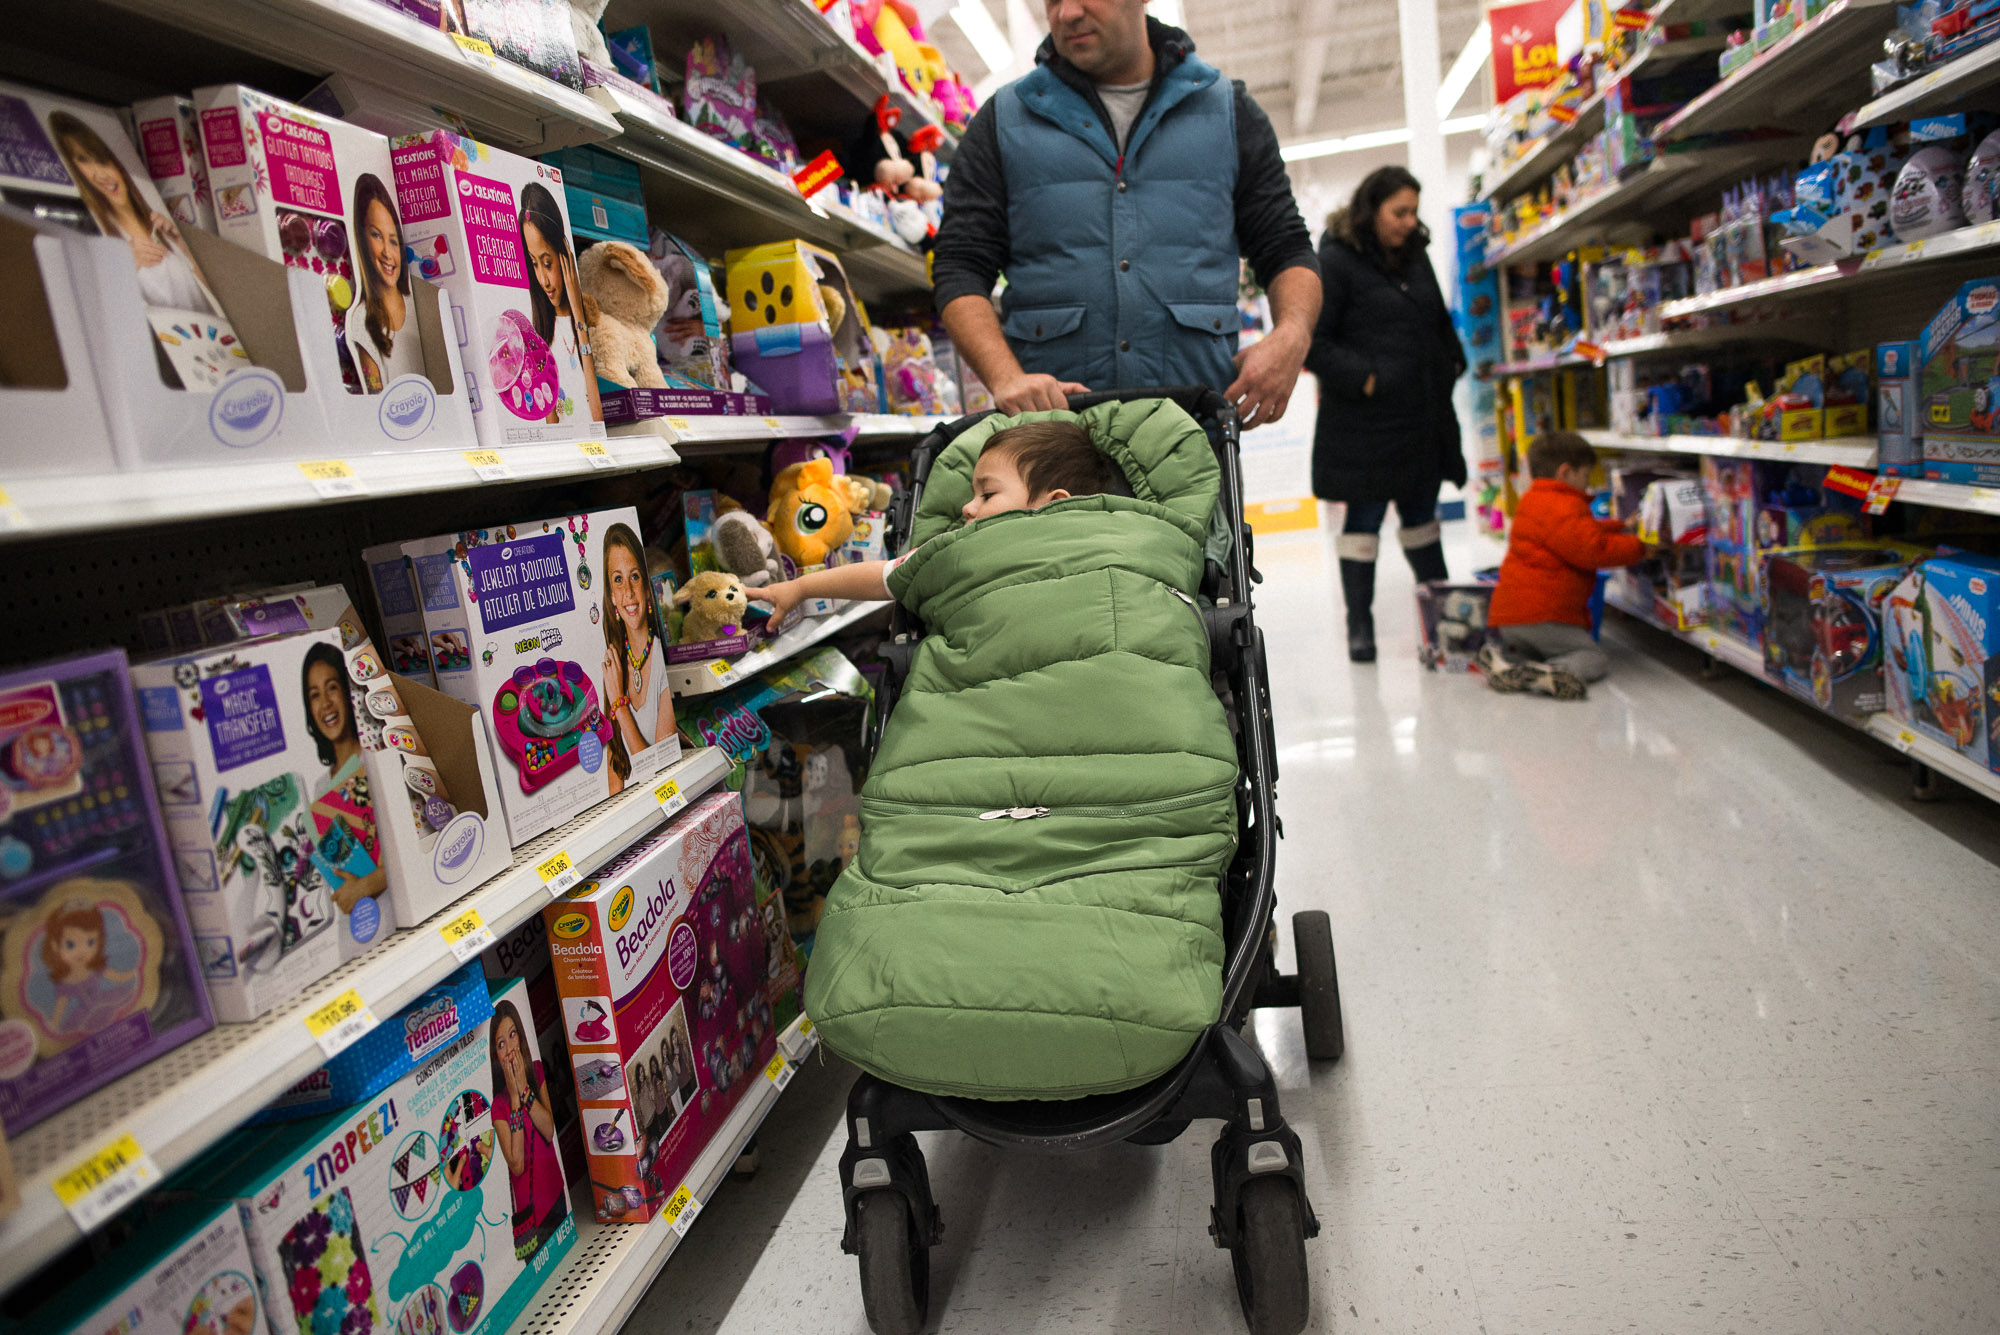 dad pushes stroller as toddler hand shoots out to grab toy off the shelf